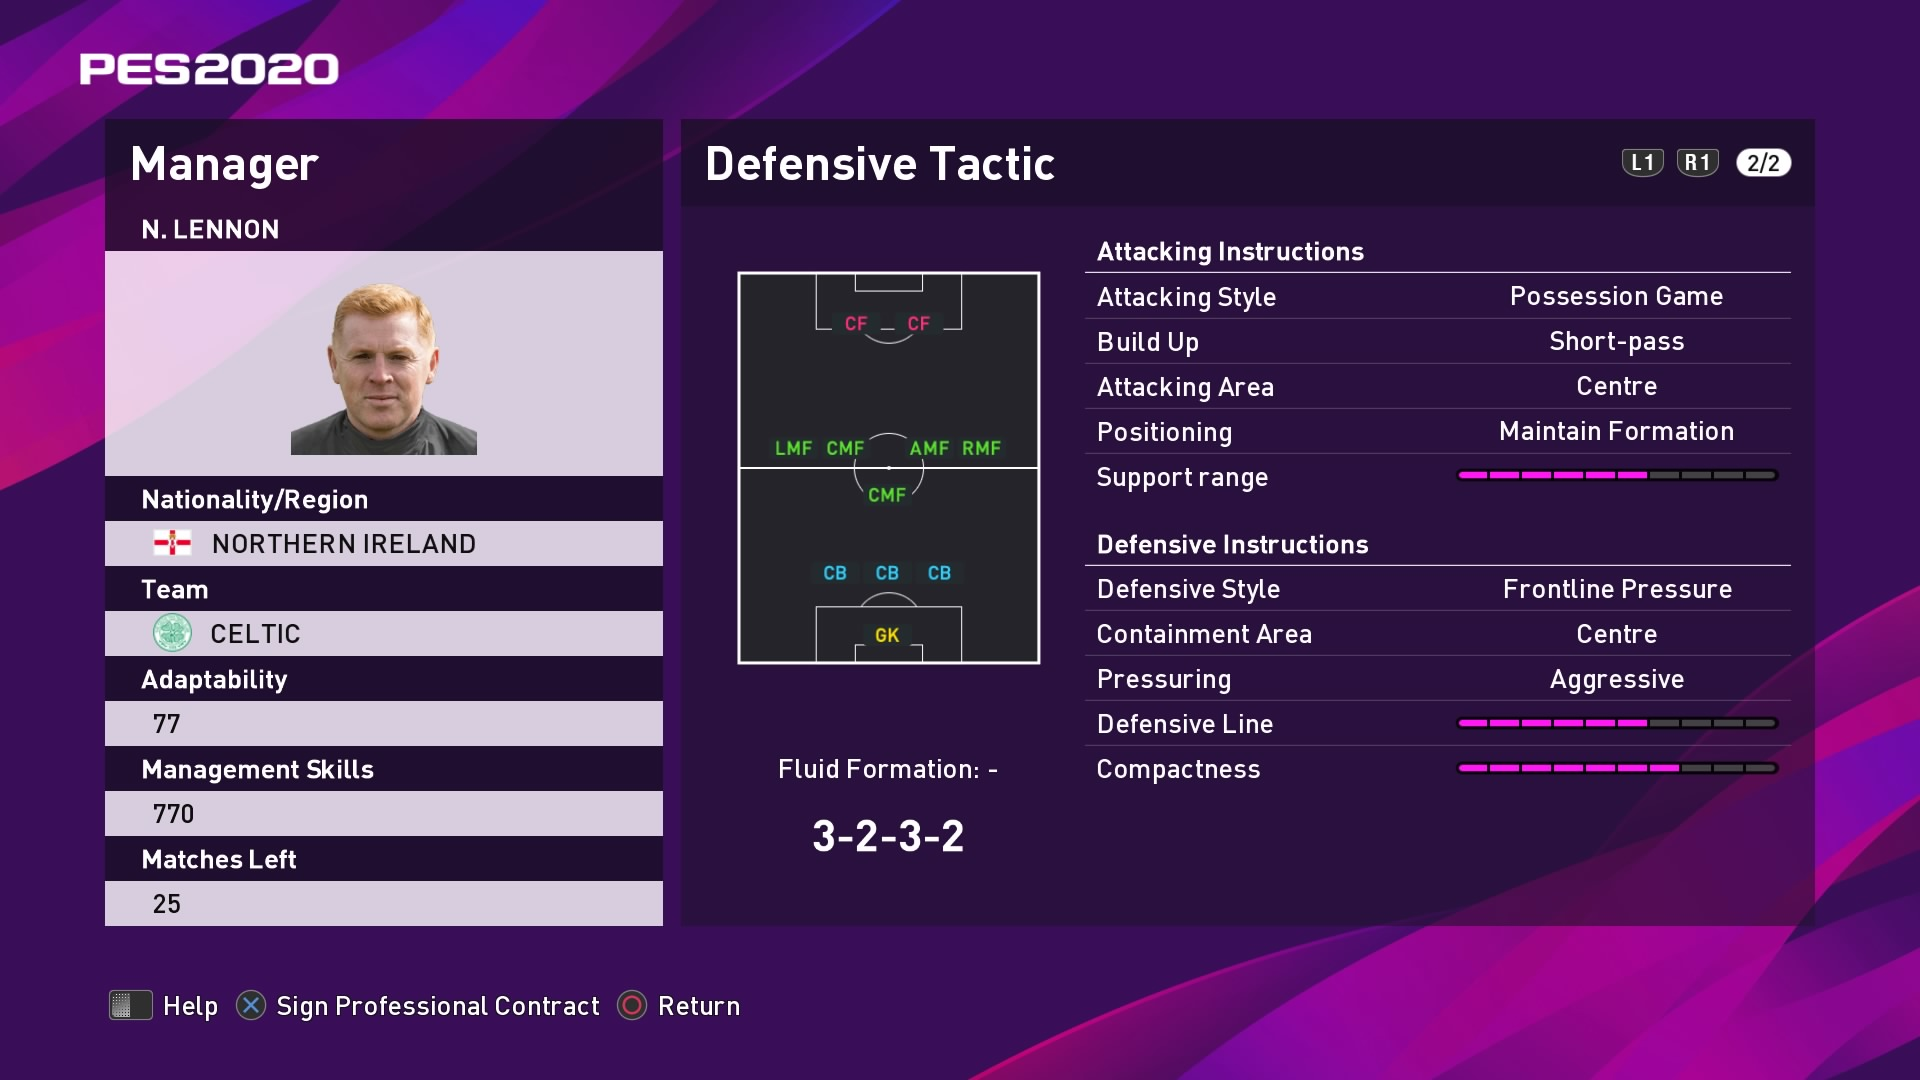 N. Lennon (3) (Neil Lennon) Defensive Tactic in PES 2020 myClub